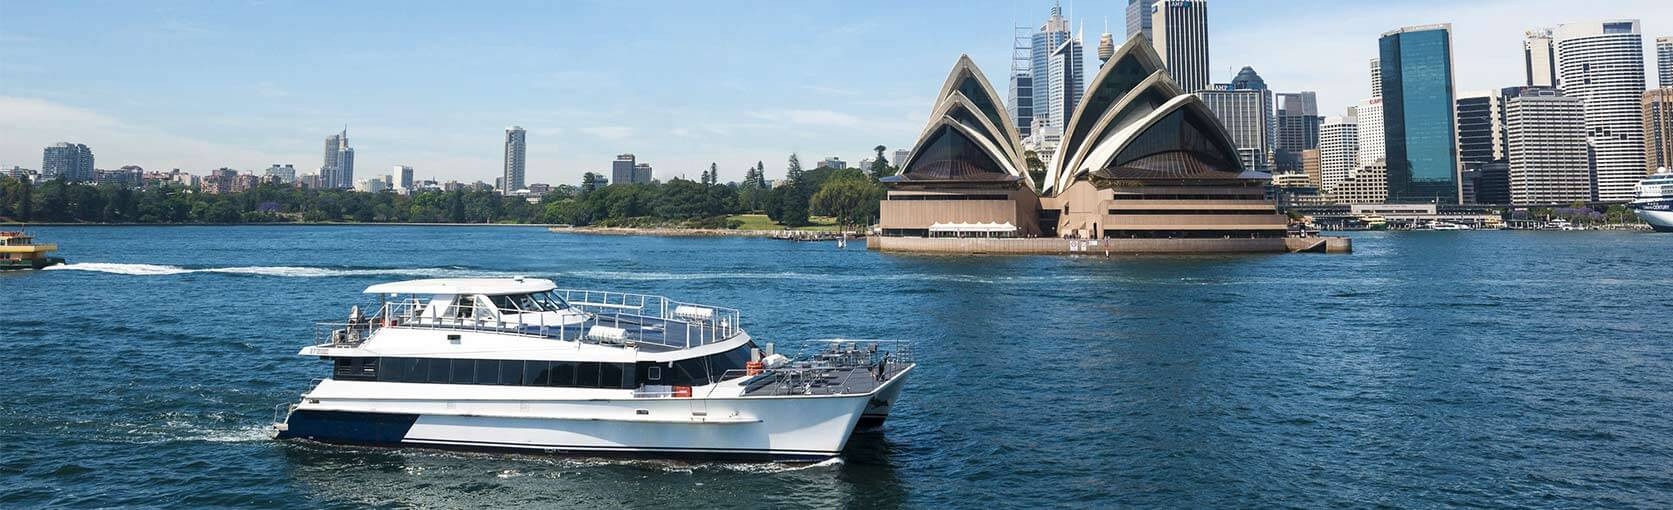 Mothers Day Dinner Cruise  Mothers Day lunch cruise Sydney Harbour